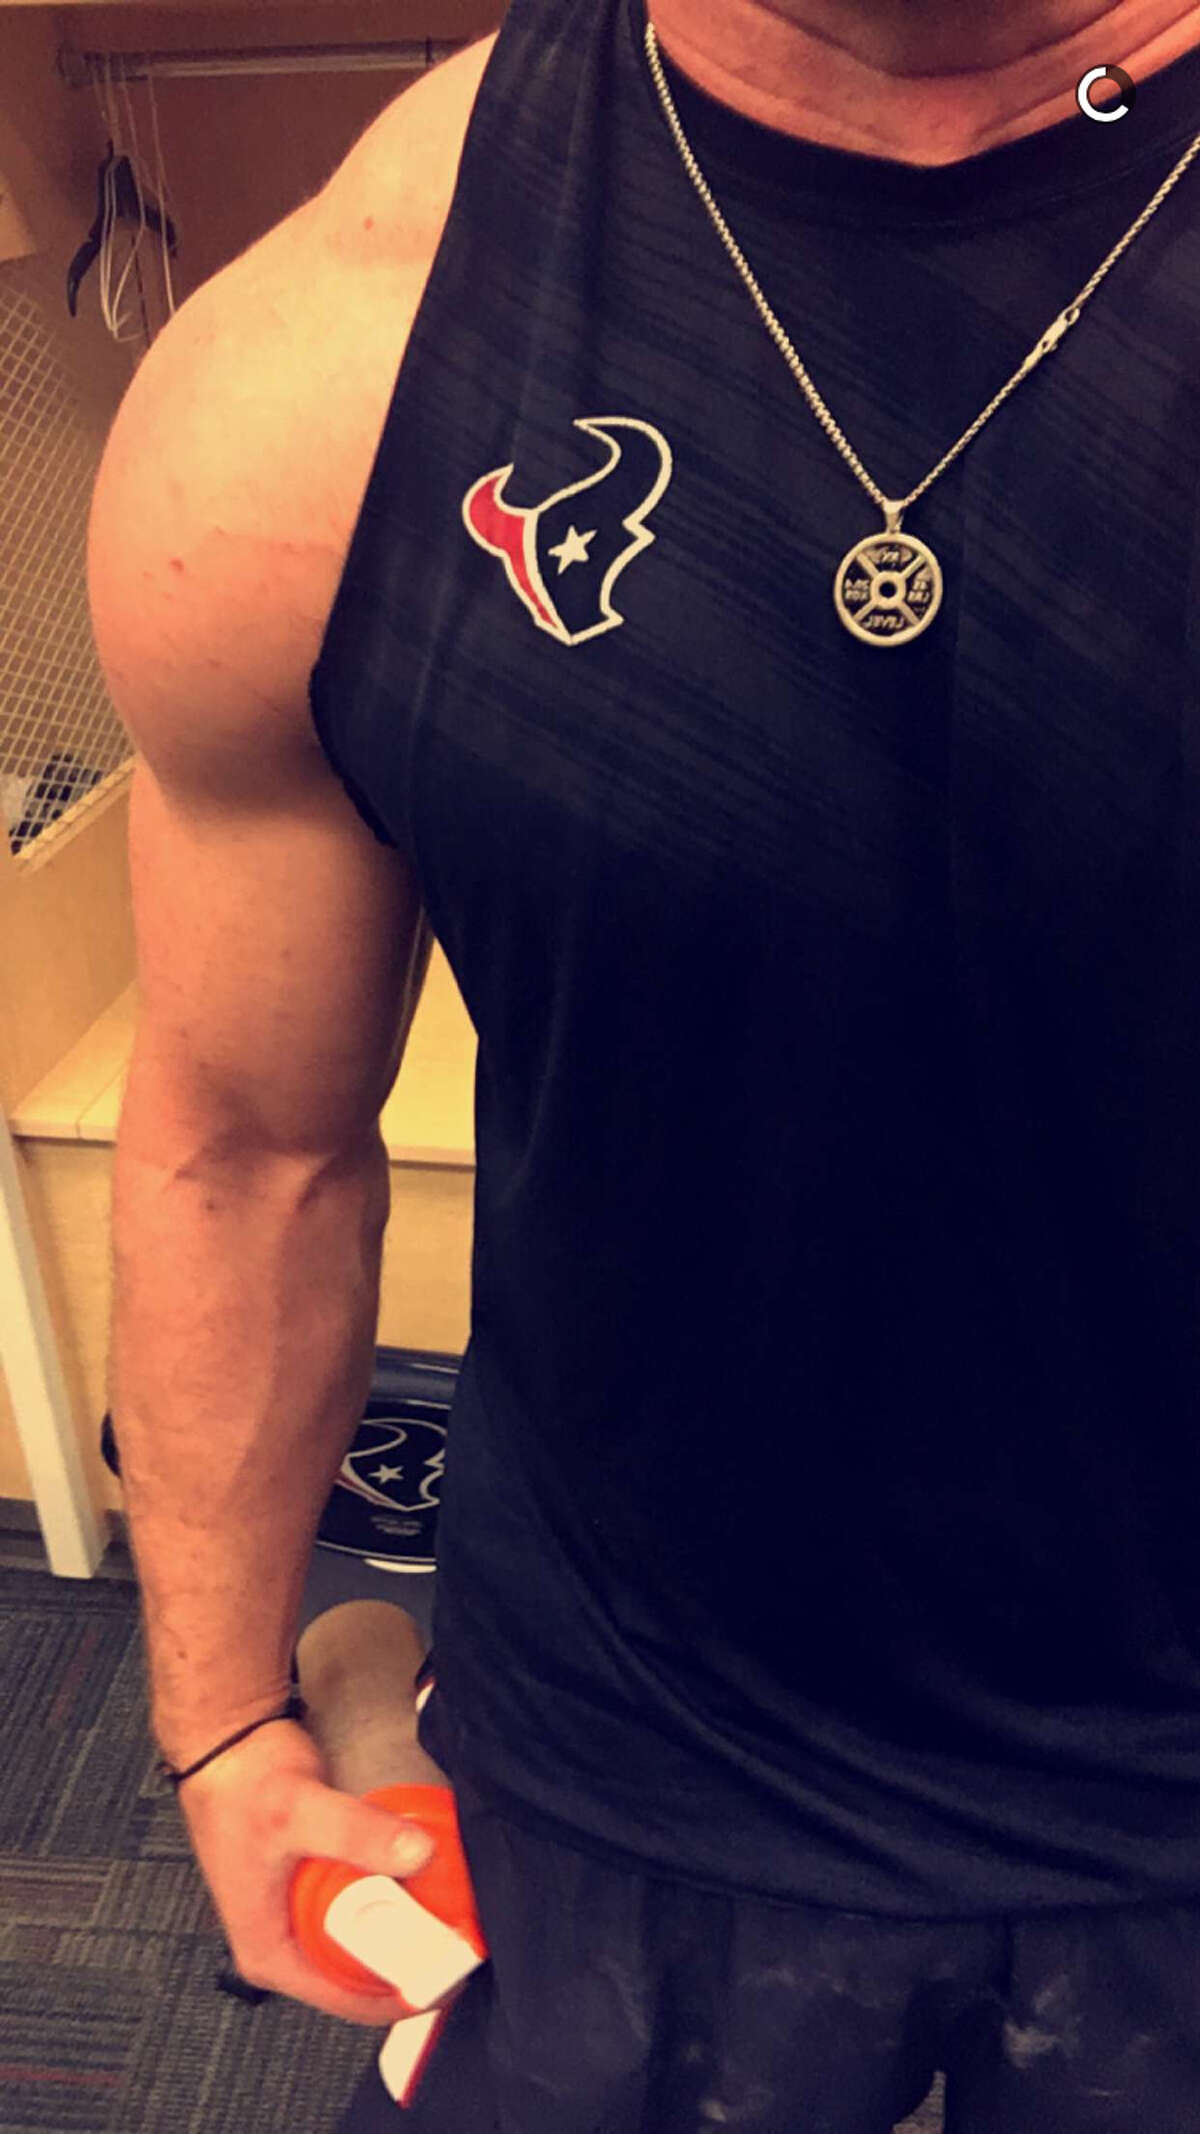 J.J. Watt sent some Snapchat photos from NRG Stadium today where he made it in to work out despite the flooding throughout the city. He sent this photo at about 3 p.m. Monday.